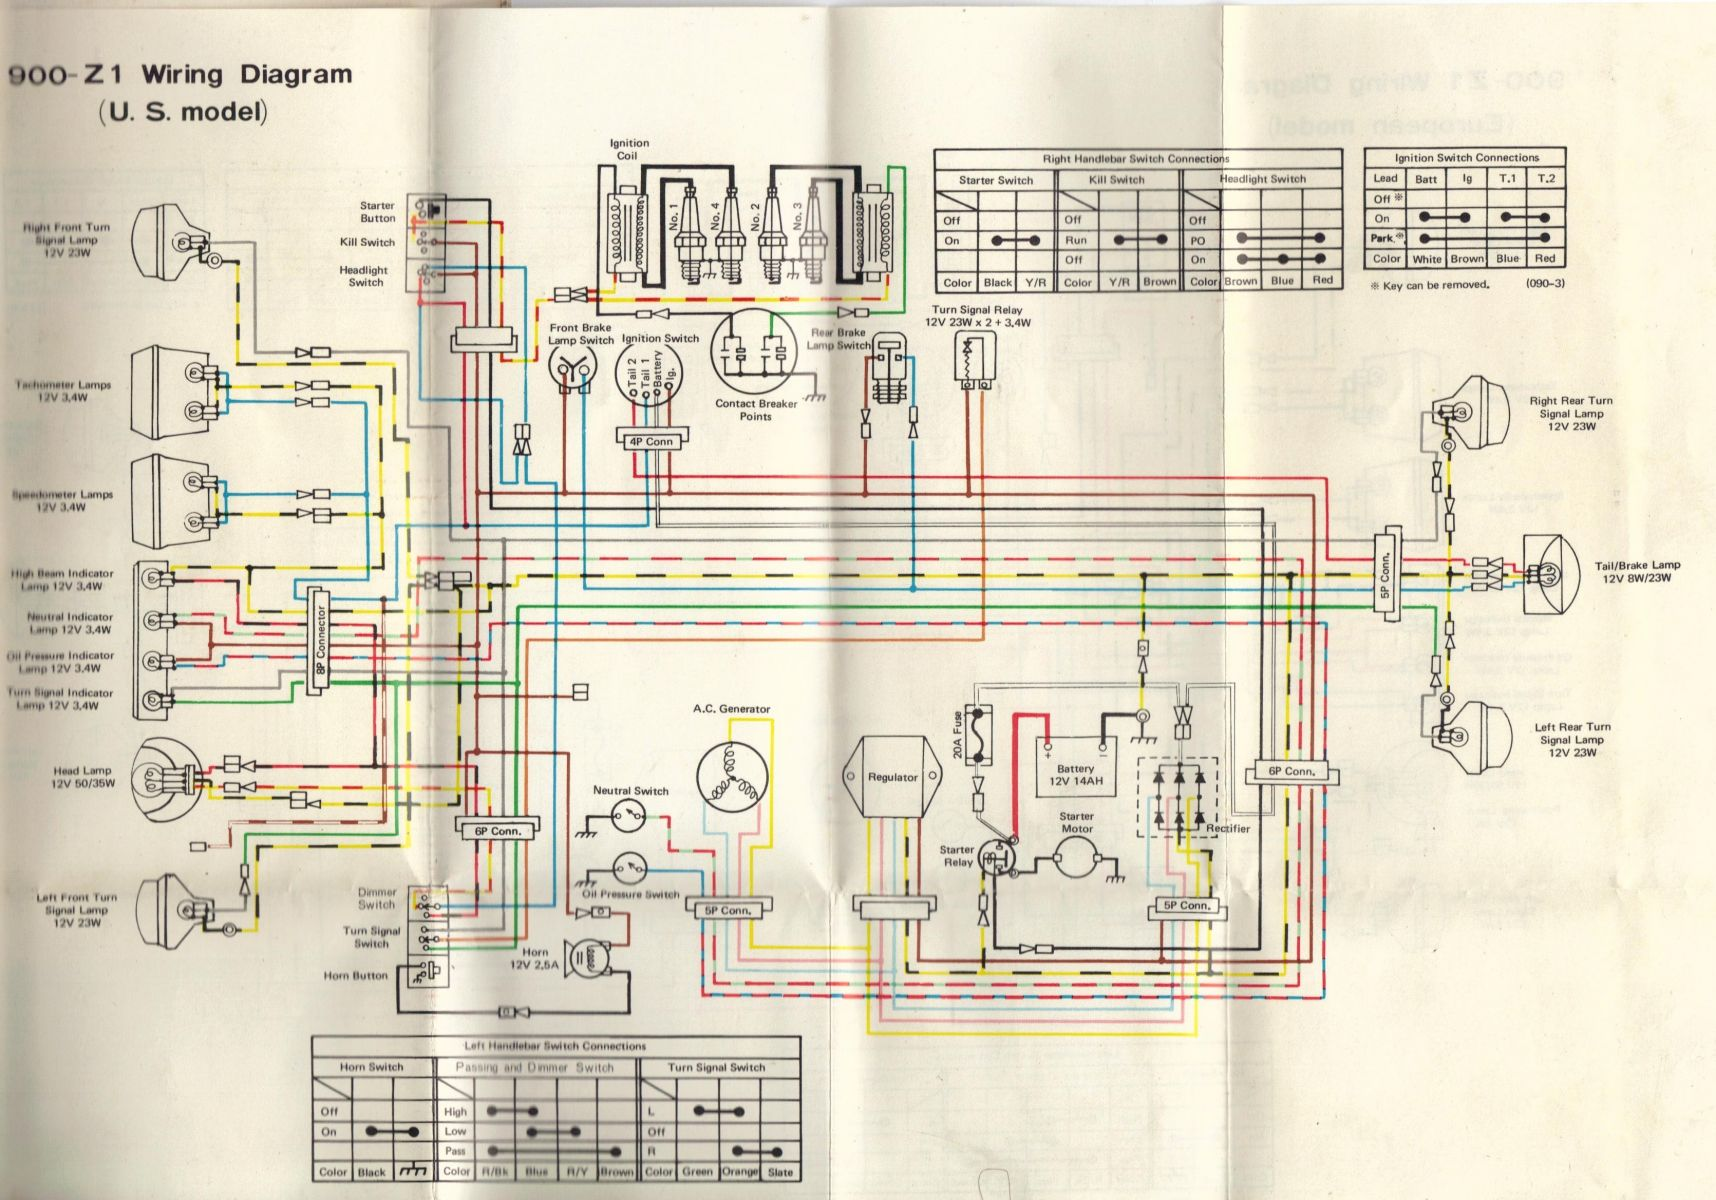 z1 wiring diagram race car battery relocation wiring. Black Bedroom Furniture Sets. Home Design Ideas